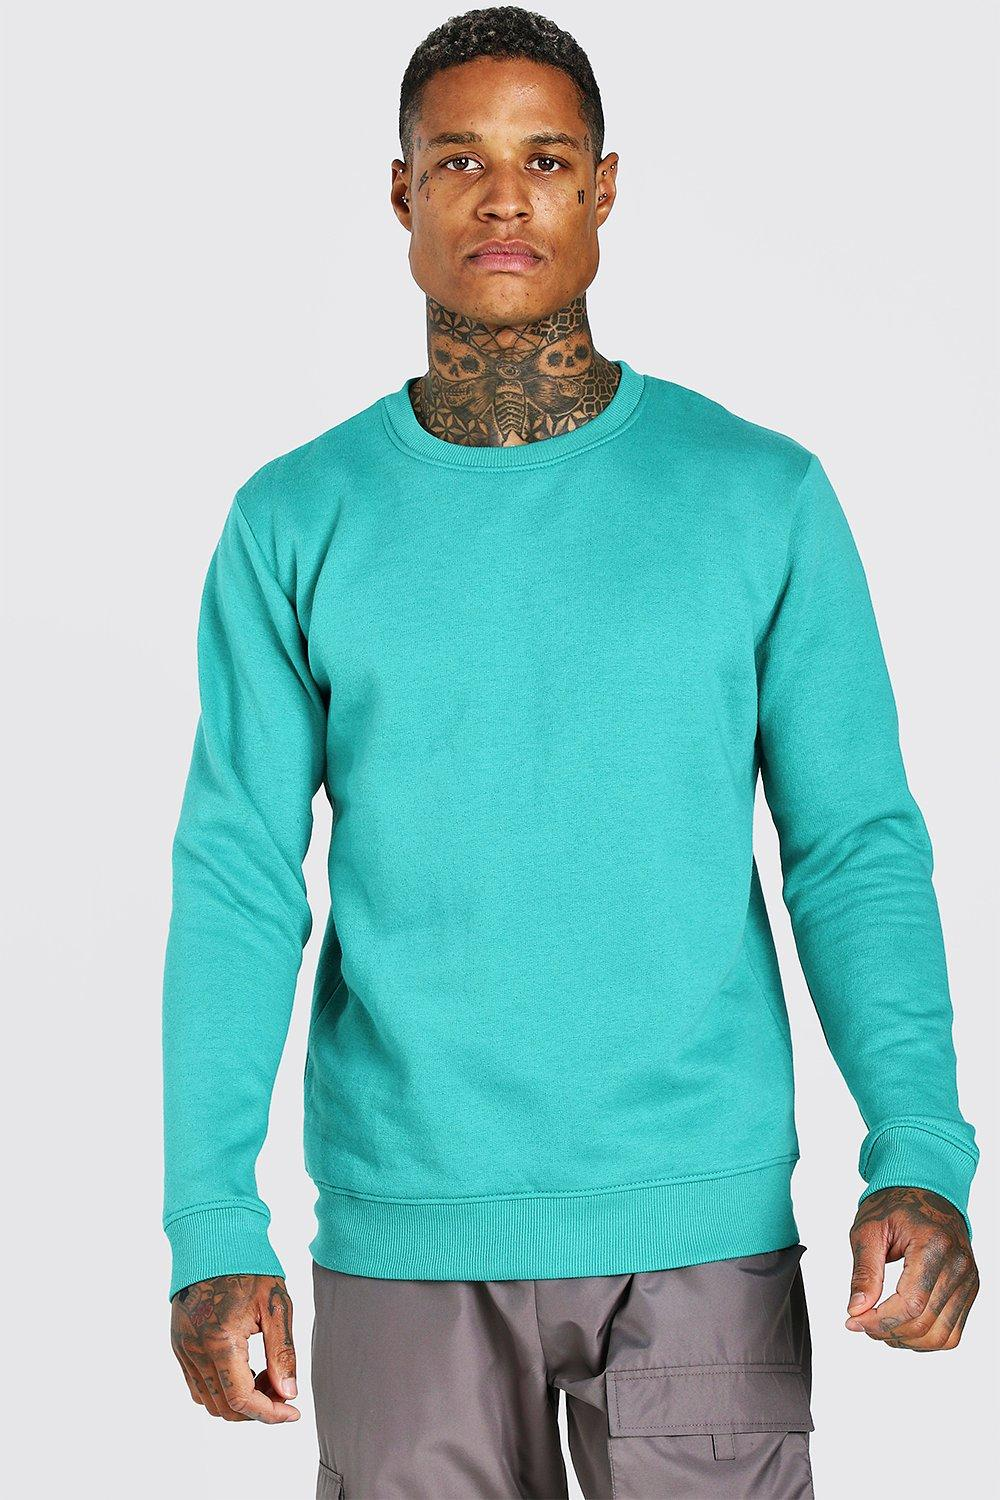 Men's Vintage Sweaters History Mens Basic Crew Neck Fleece Sweatshirt - Green $8.00 AT vintagedancer.com